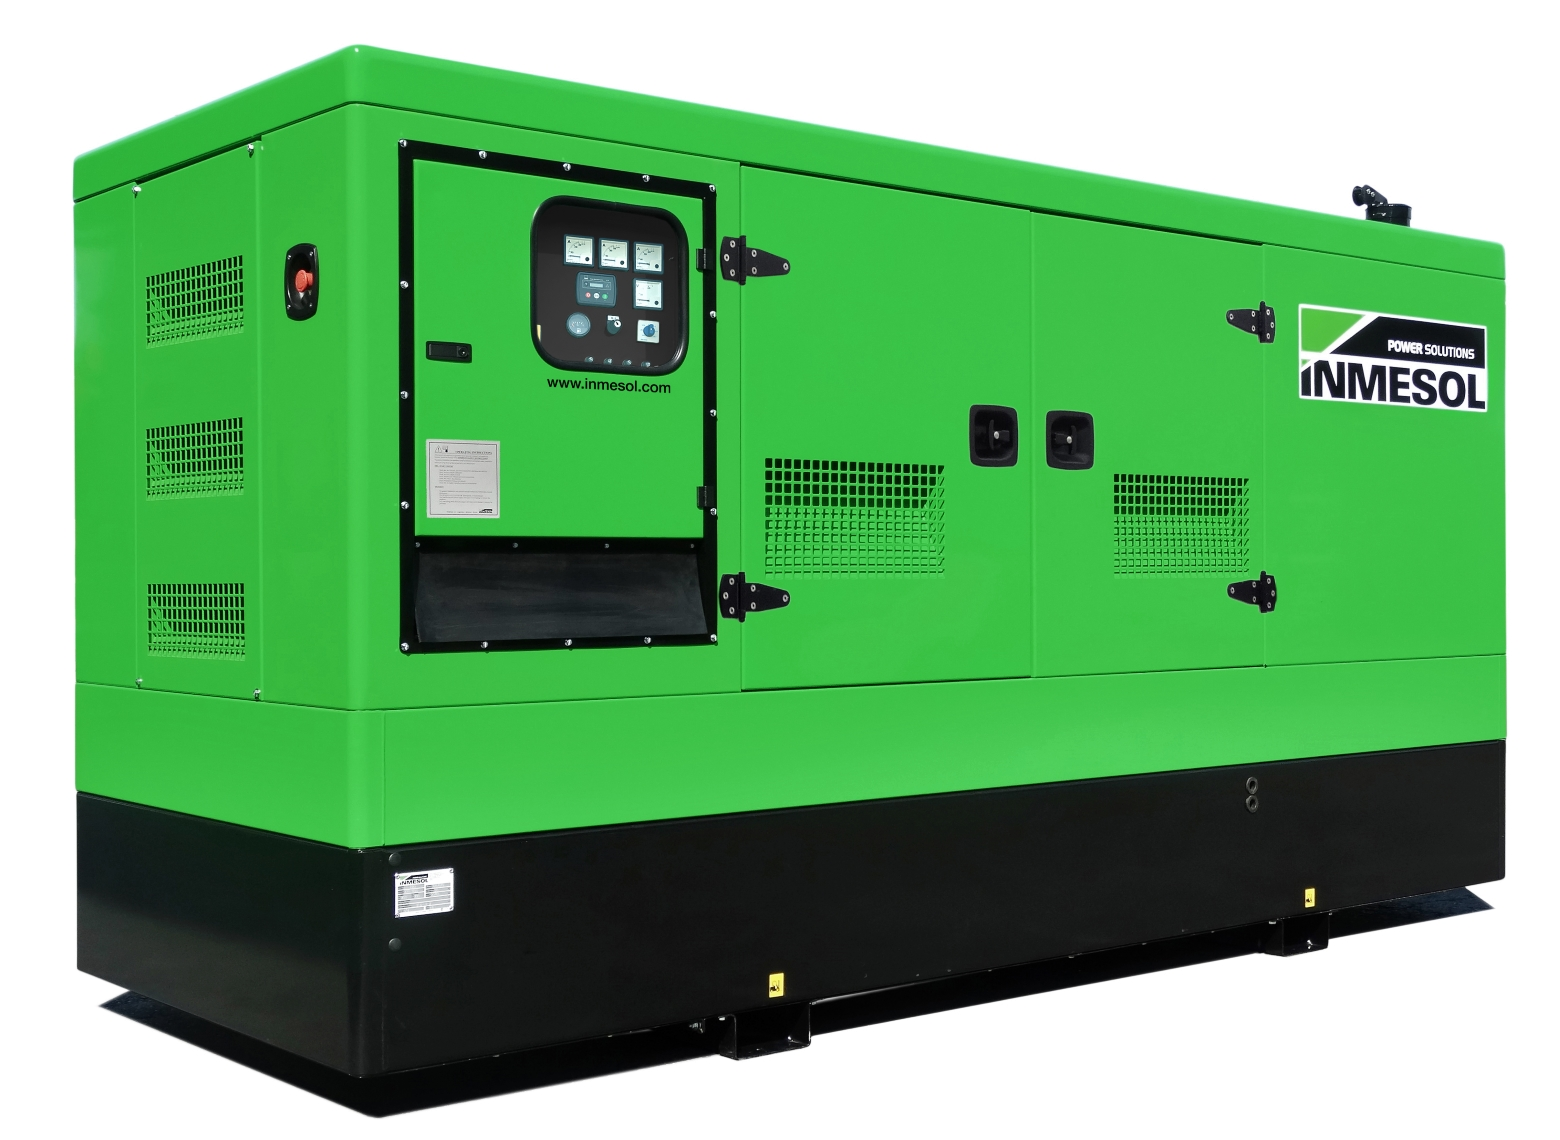 Generator with manual control panel.ID-225 - DEUTZ - BF6M1013FCG1(60HZ) - 1.800 R.P.M. | 60 Hz